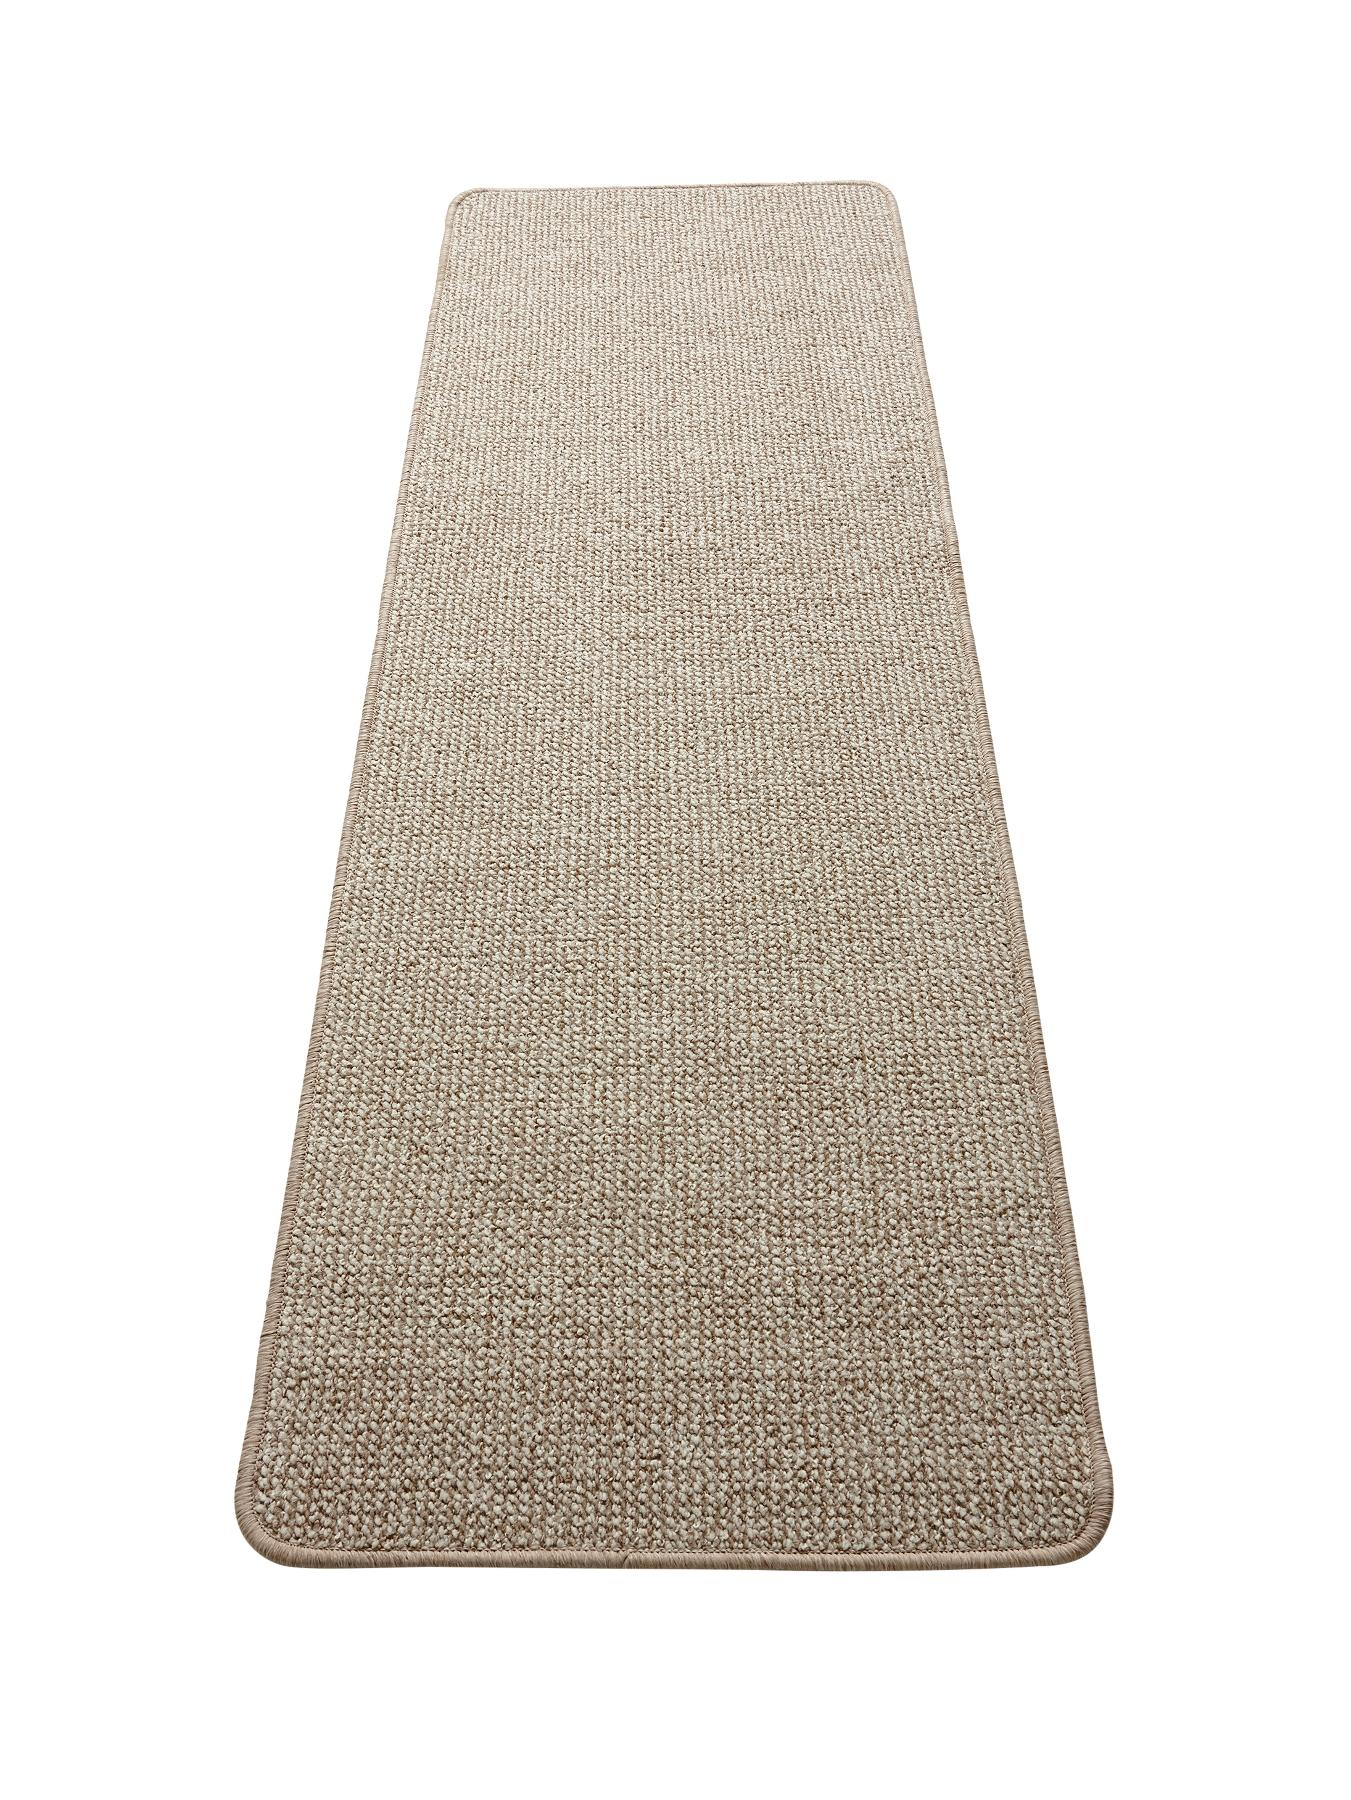 Florence Runner with FREE Door Mat, Beige,Grey